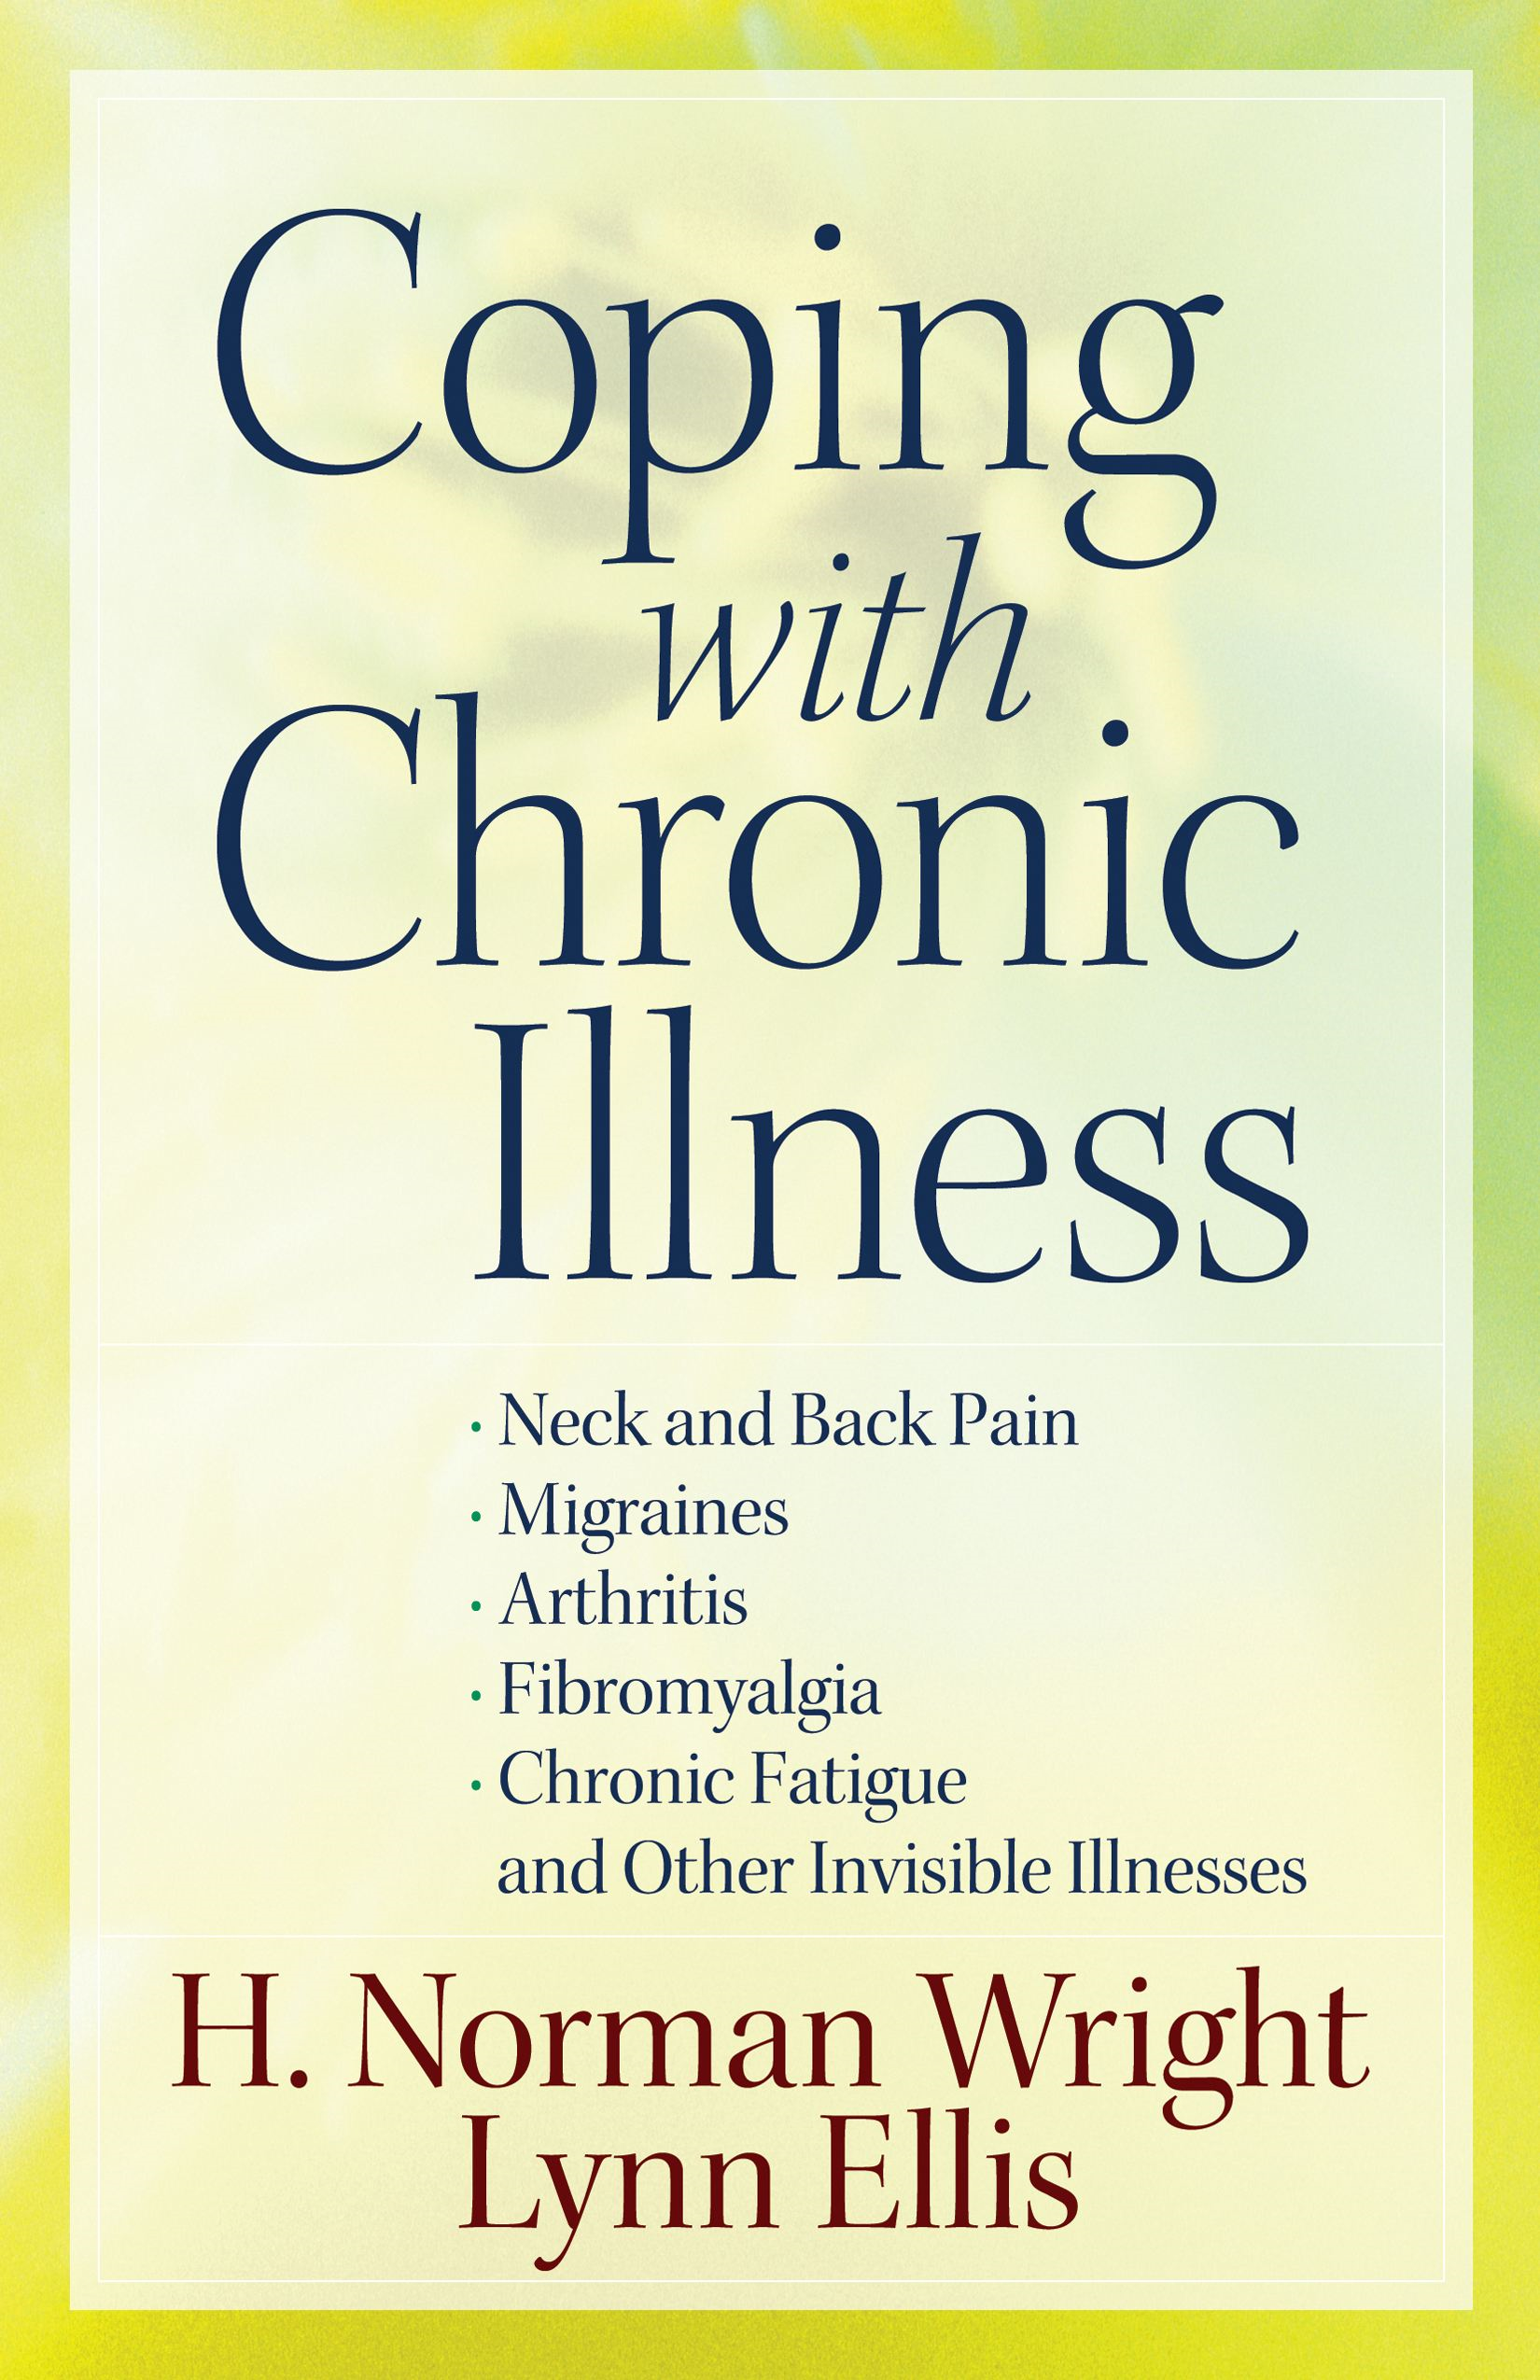 Coping with Chronic Illness By: H. Norman Wright, Lynn Ellis